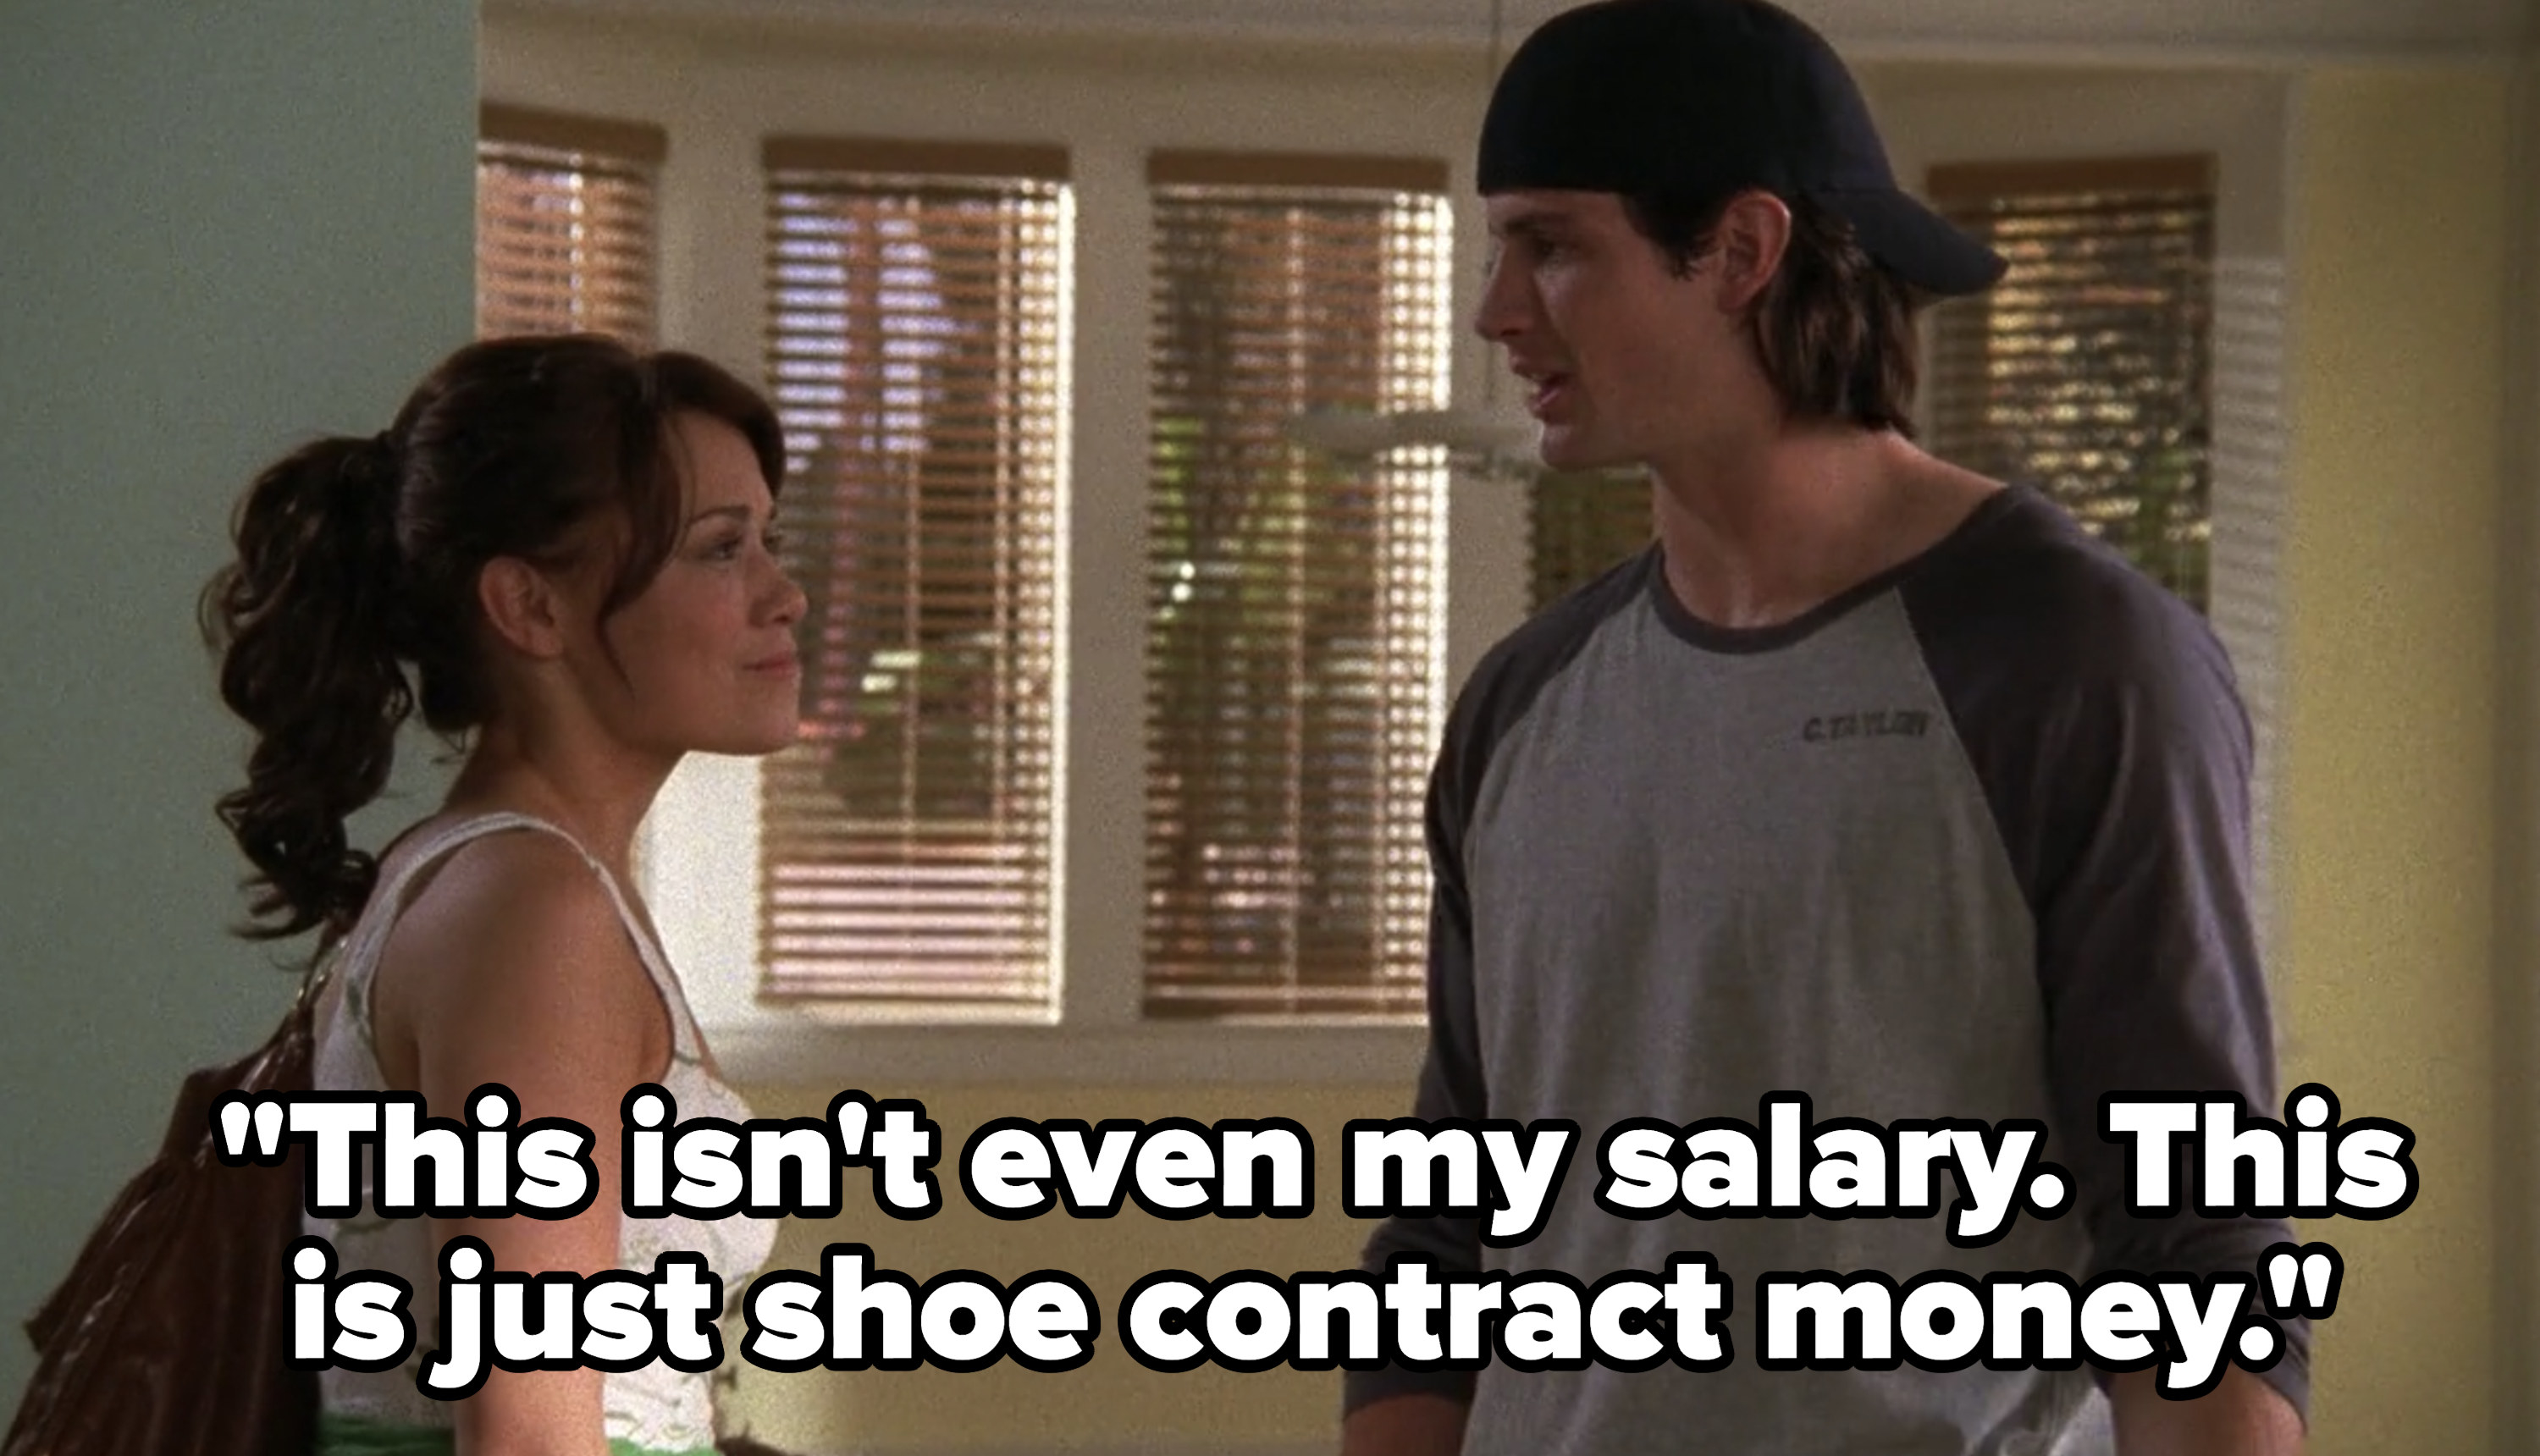 Nathan tells Haley this isn't even his salary, it's just shoe contract money